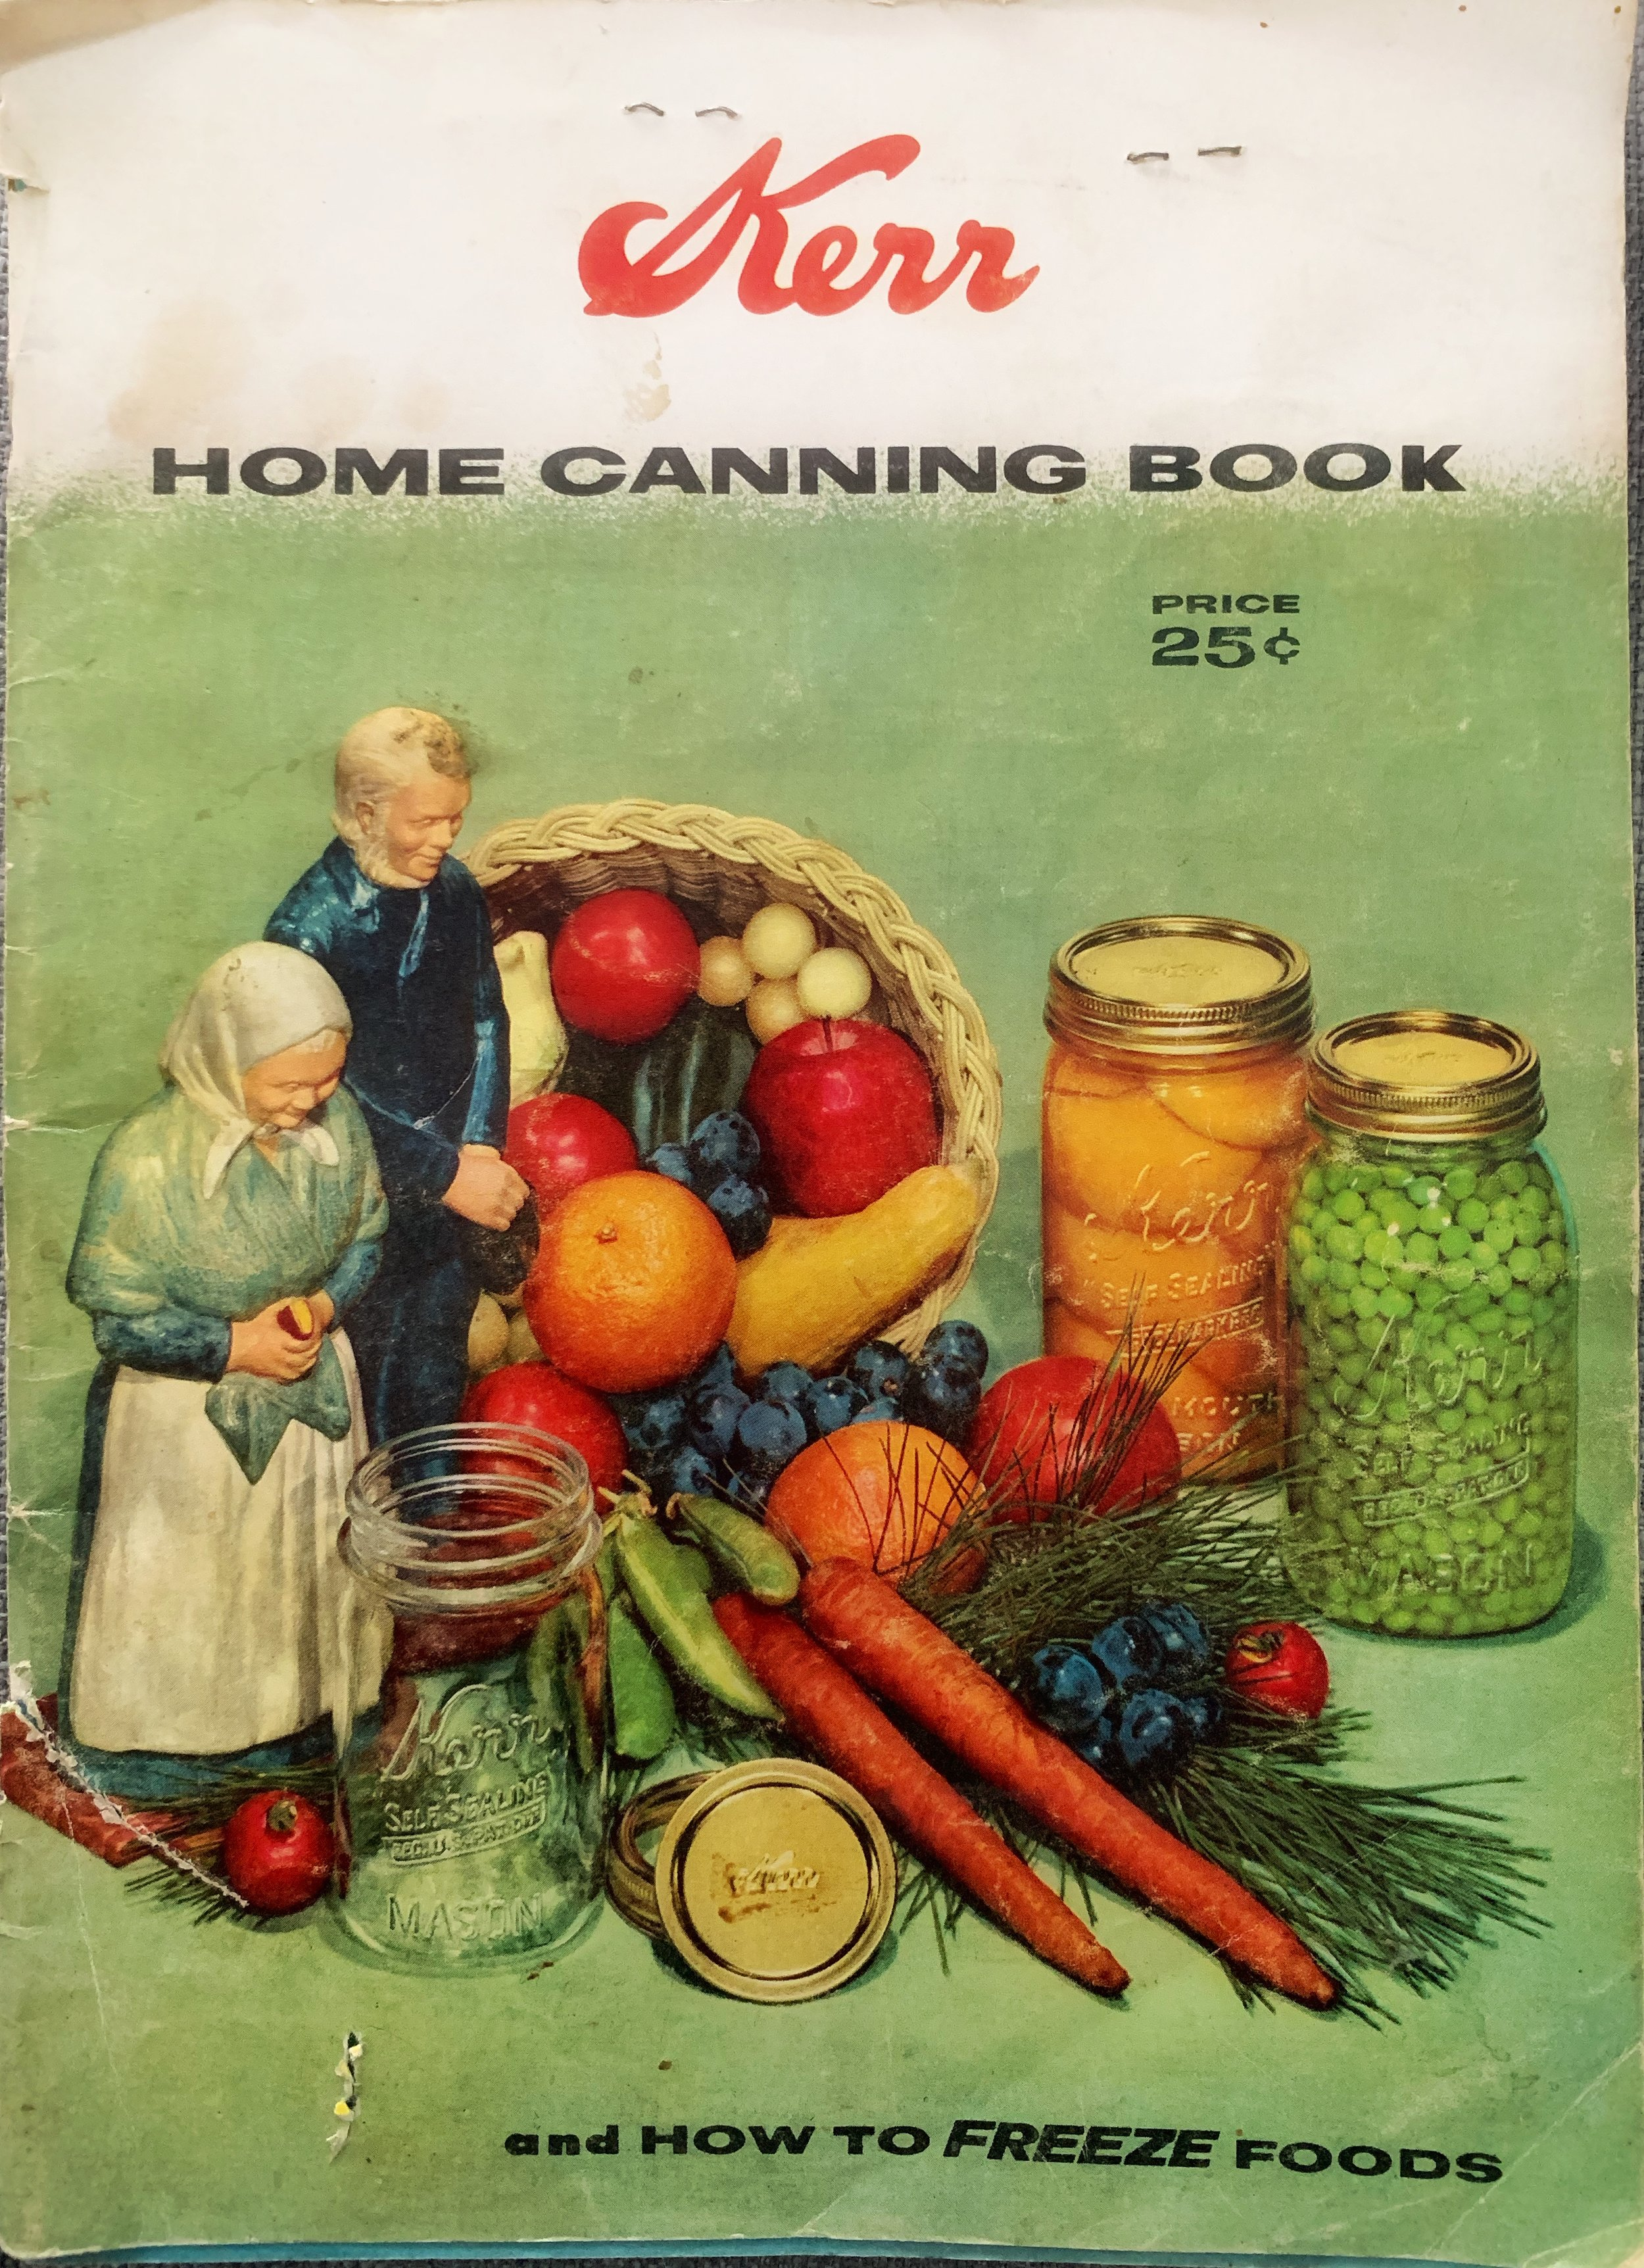 My mum's canning book which has her notes in it.